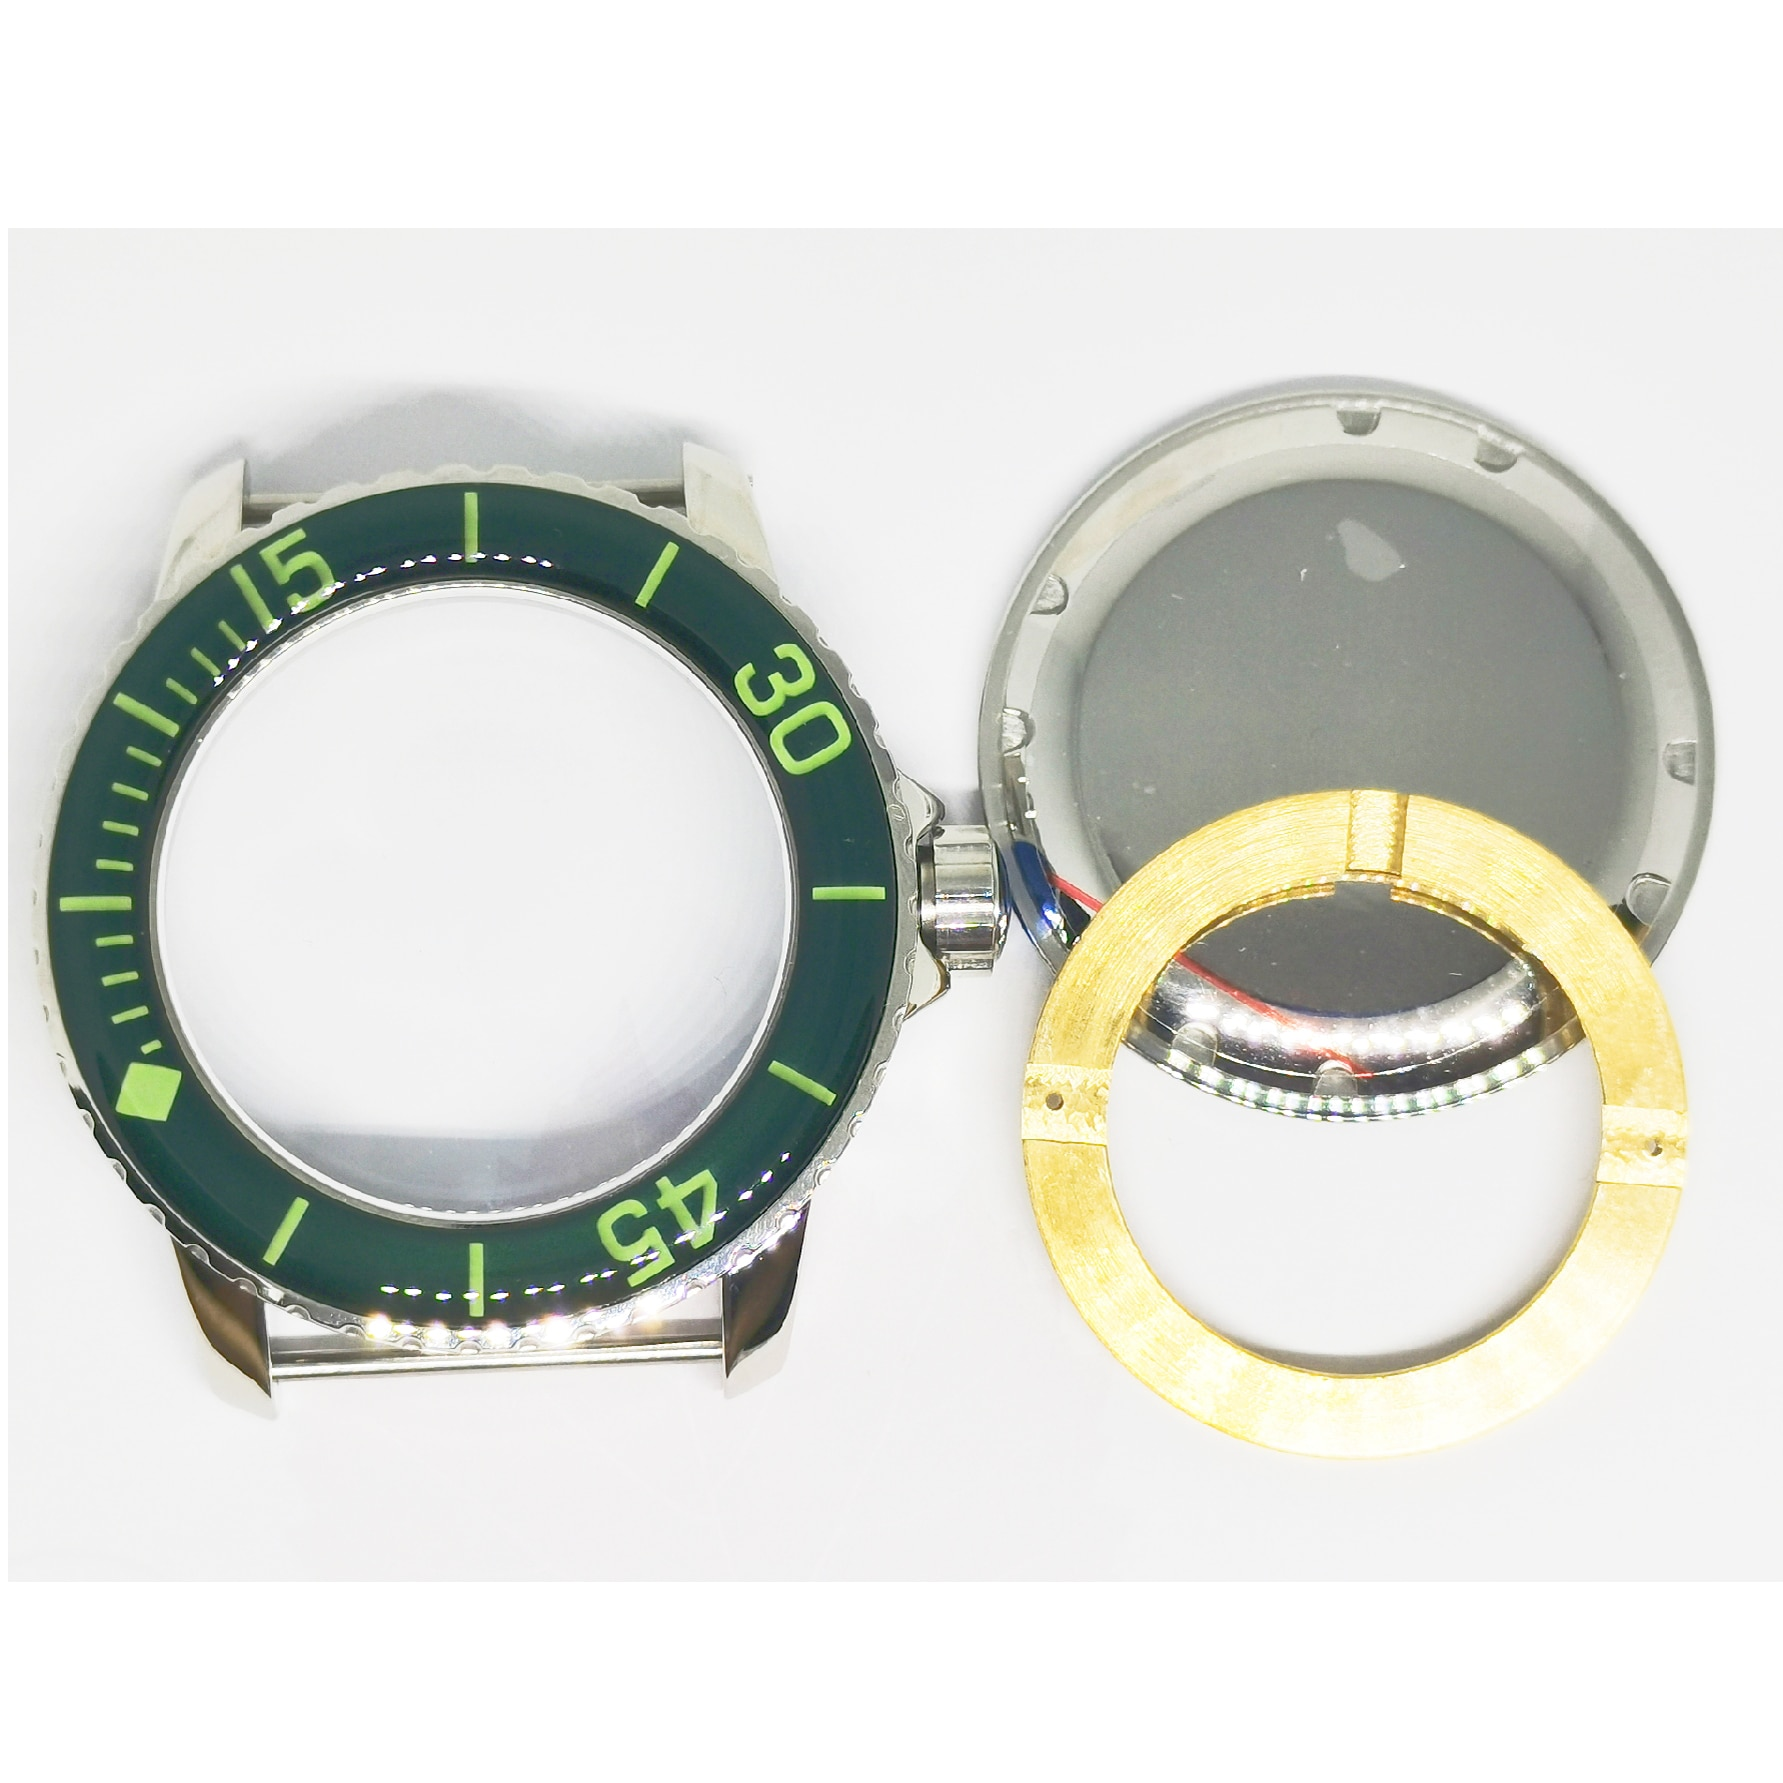 New 45MM Watch Part 316 Stainless Steel Case Add Luminous Dial And Hands Fit ETA 2836/2824 ST2130 Miyota 8215 Automatic Movement enlarge